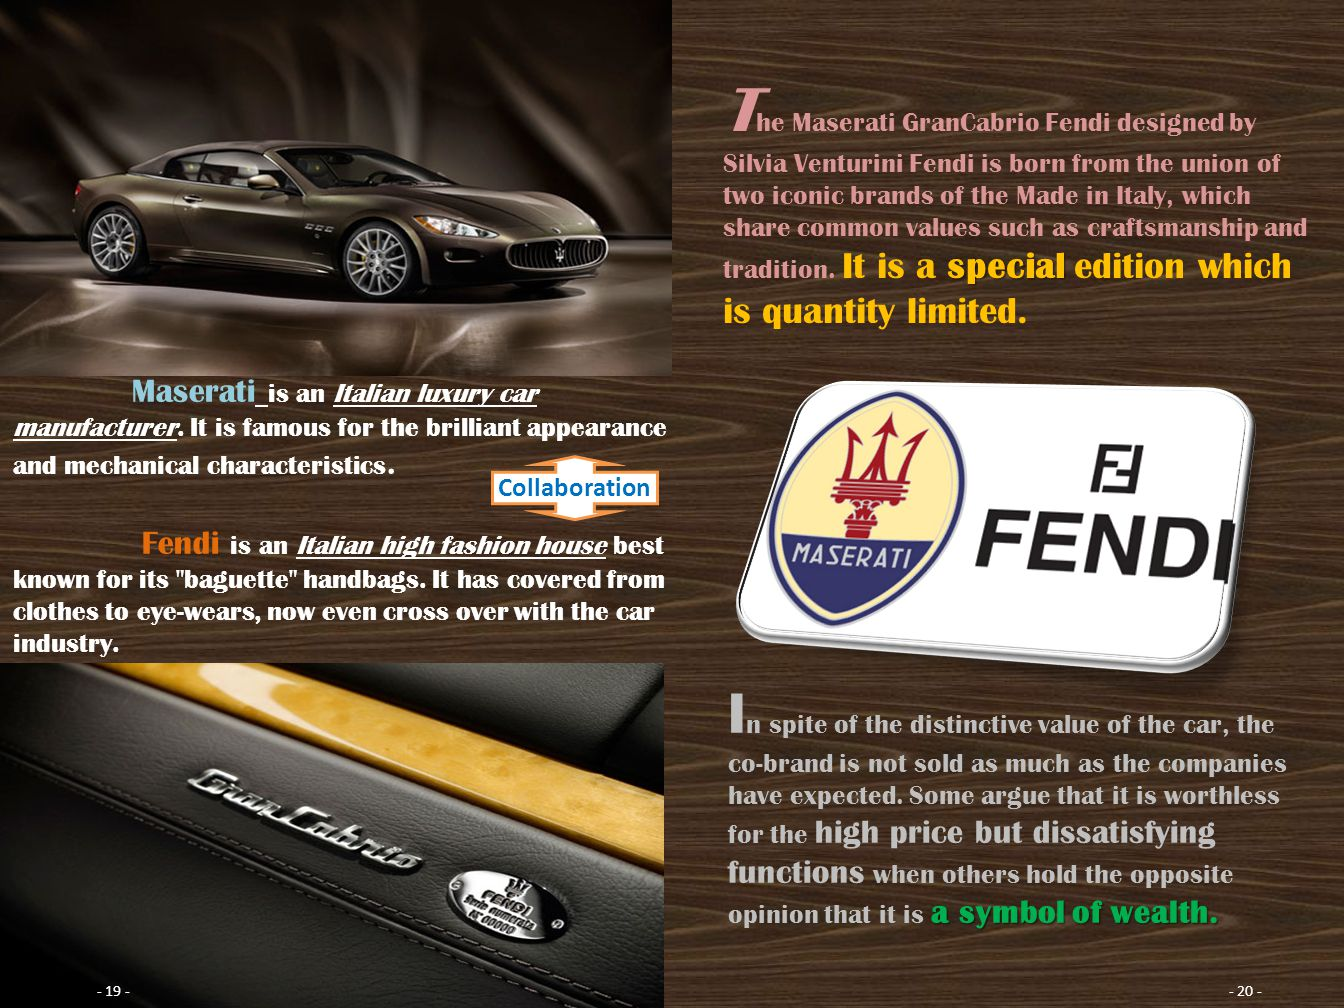 Maserati is an Italian luxury car manufacturer.